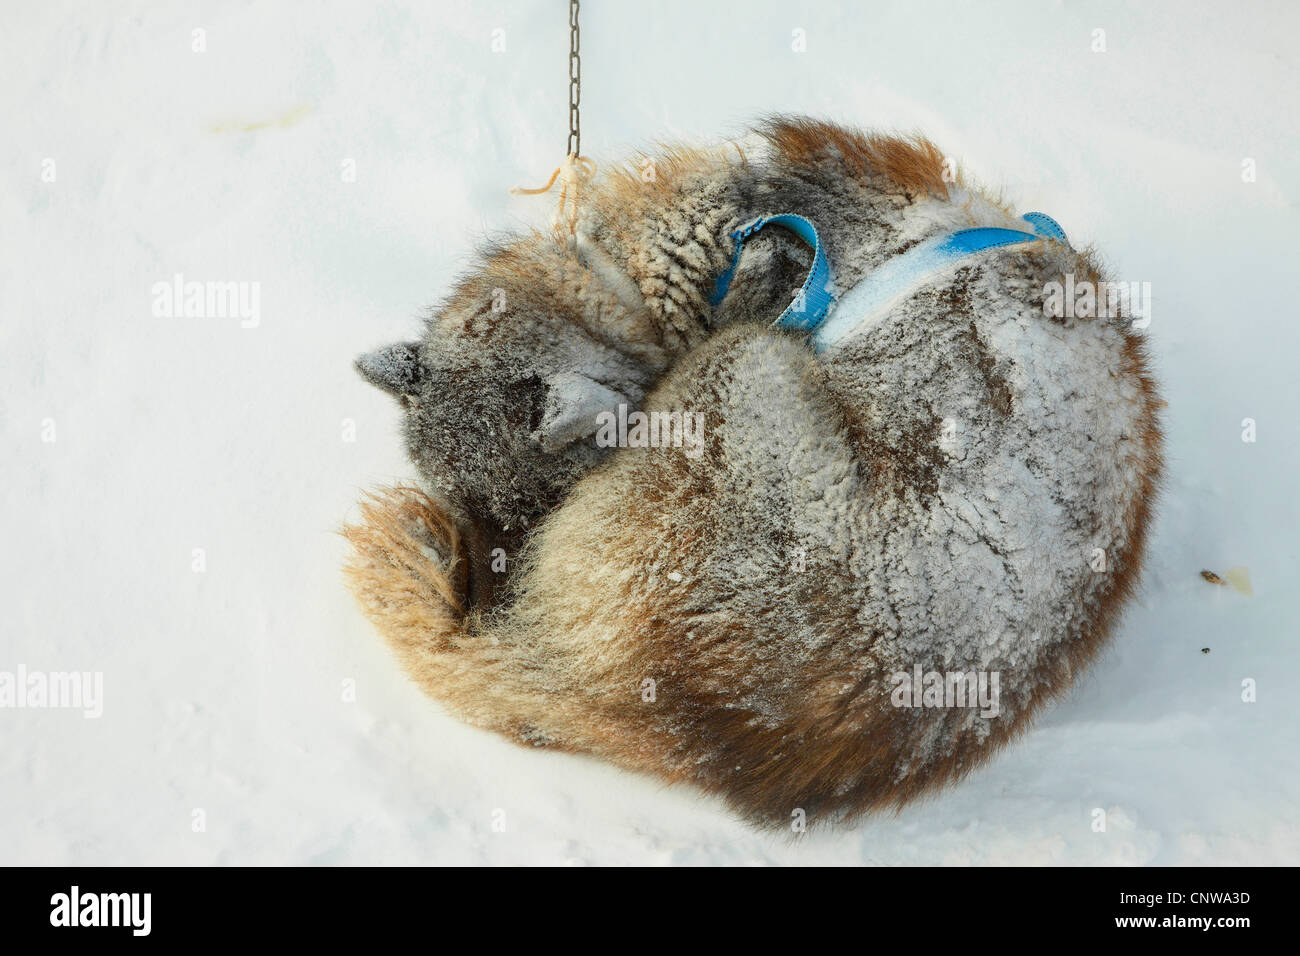 Greenland Dog (Canis lupus f. familiaris), coiled up in snow storm, Greenland, Ostgroenland, Tunu, Kalaallit Nunaat, Stock Photo